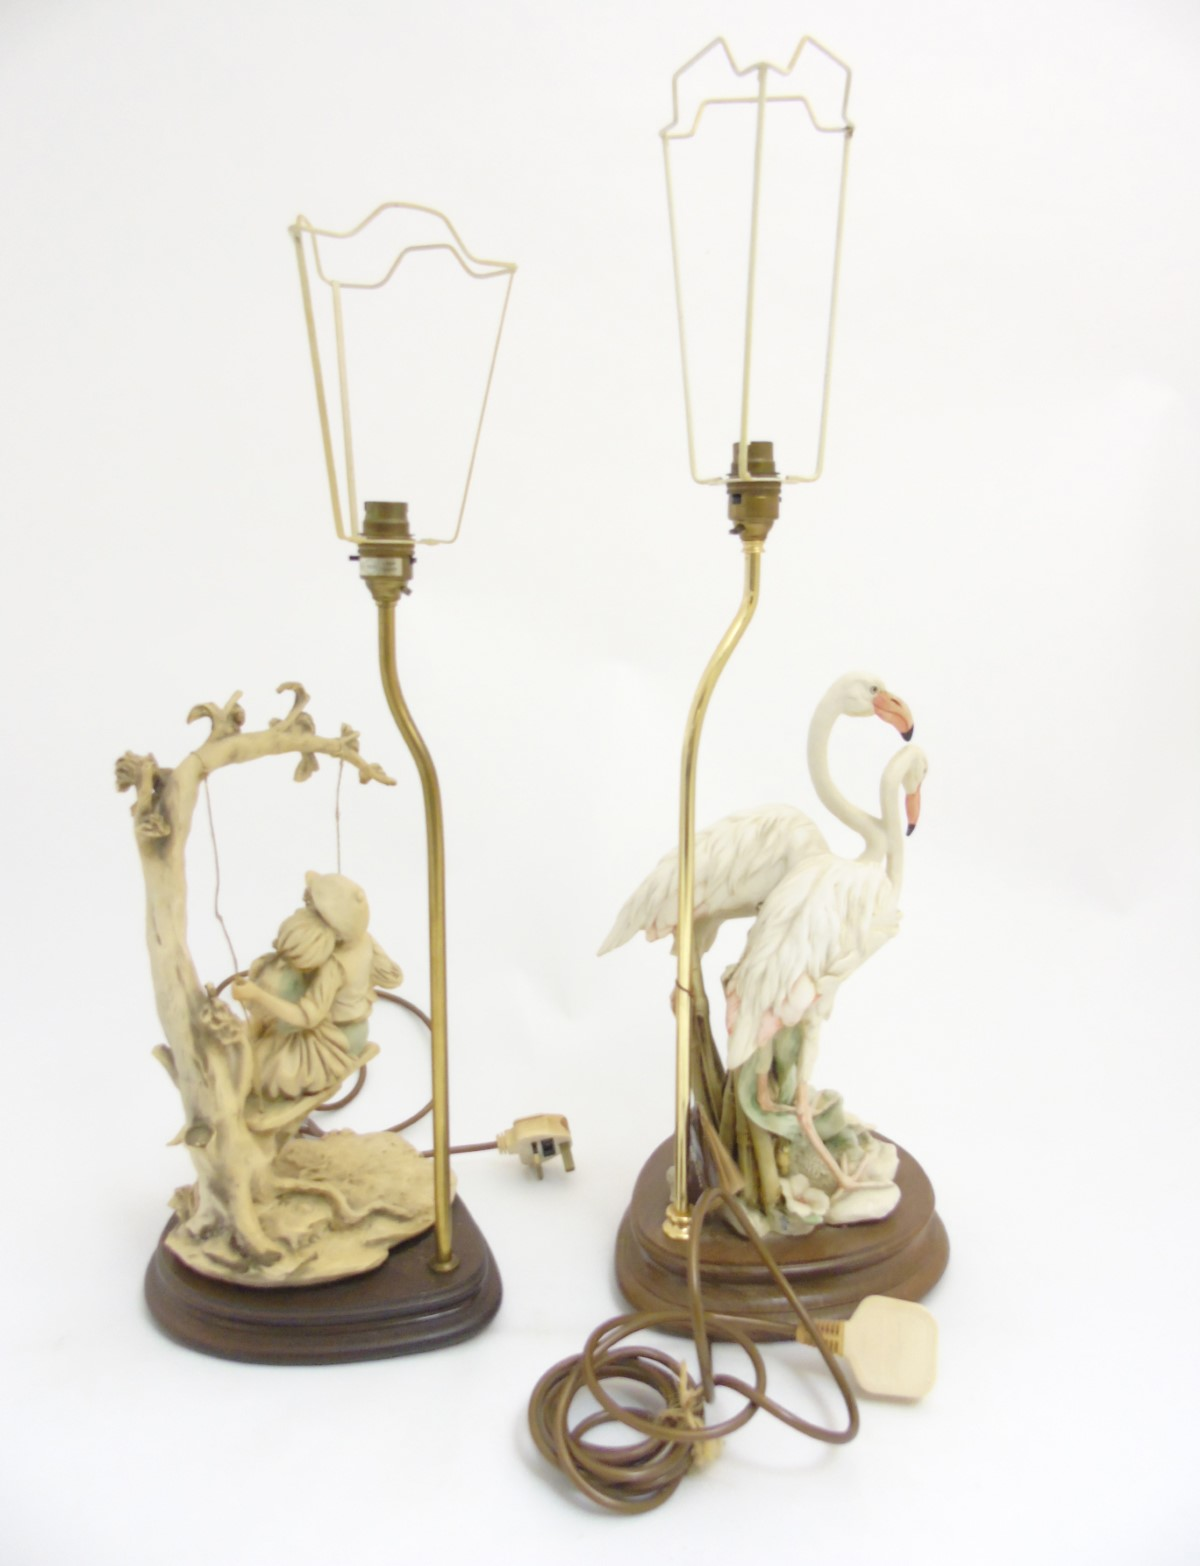 Lot 33 - A Giuseppe Armani lamp sculpture of two flamingos standing in water flora,